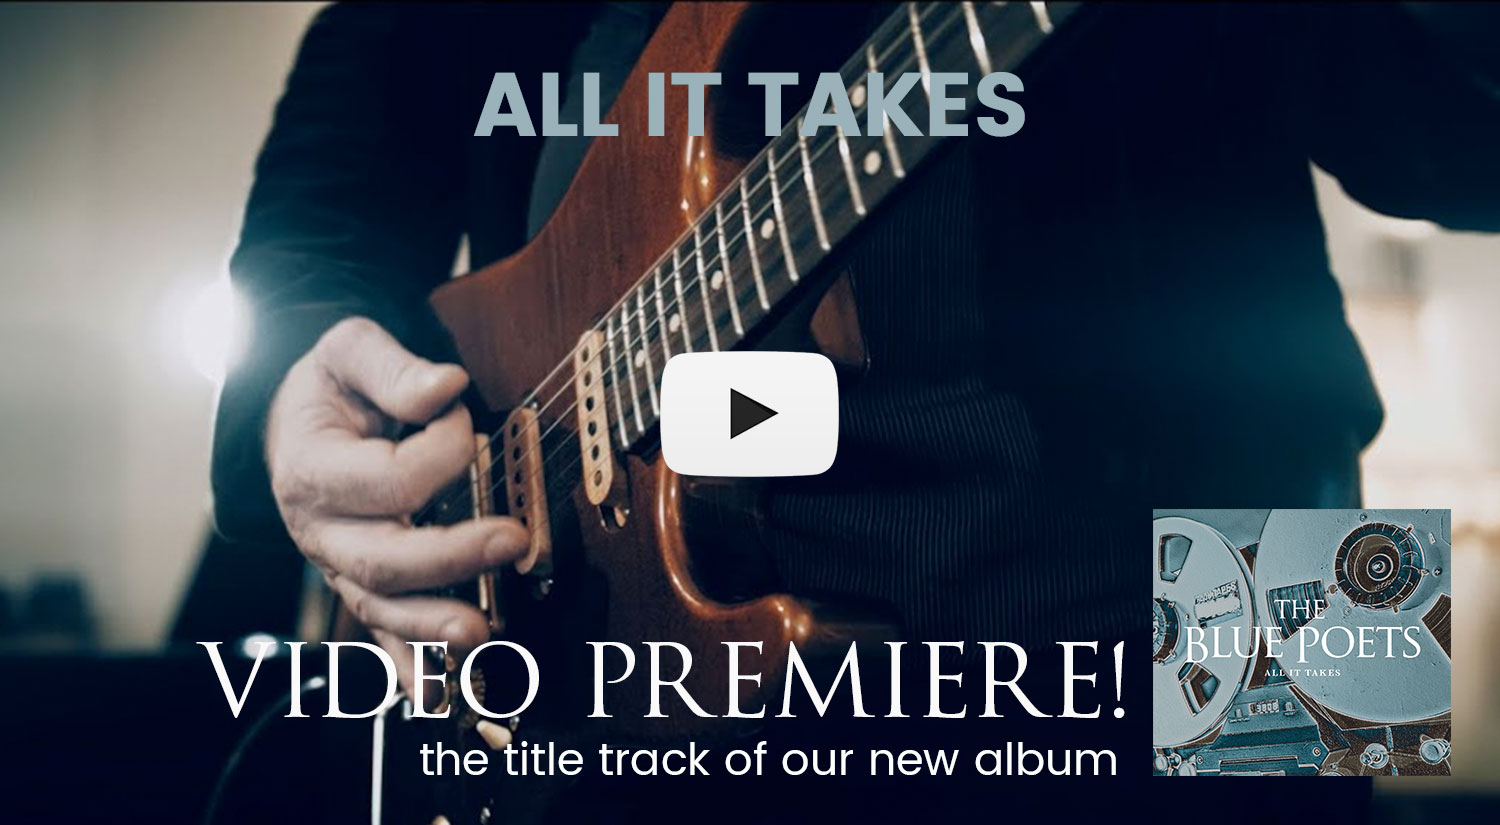 New Video - All it takes